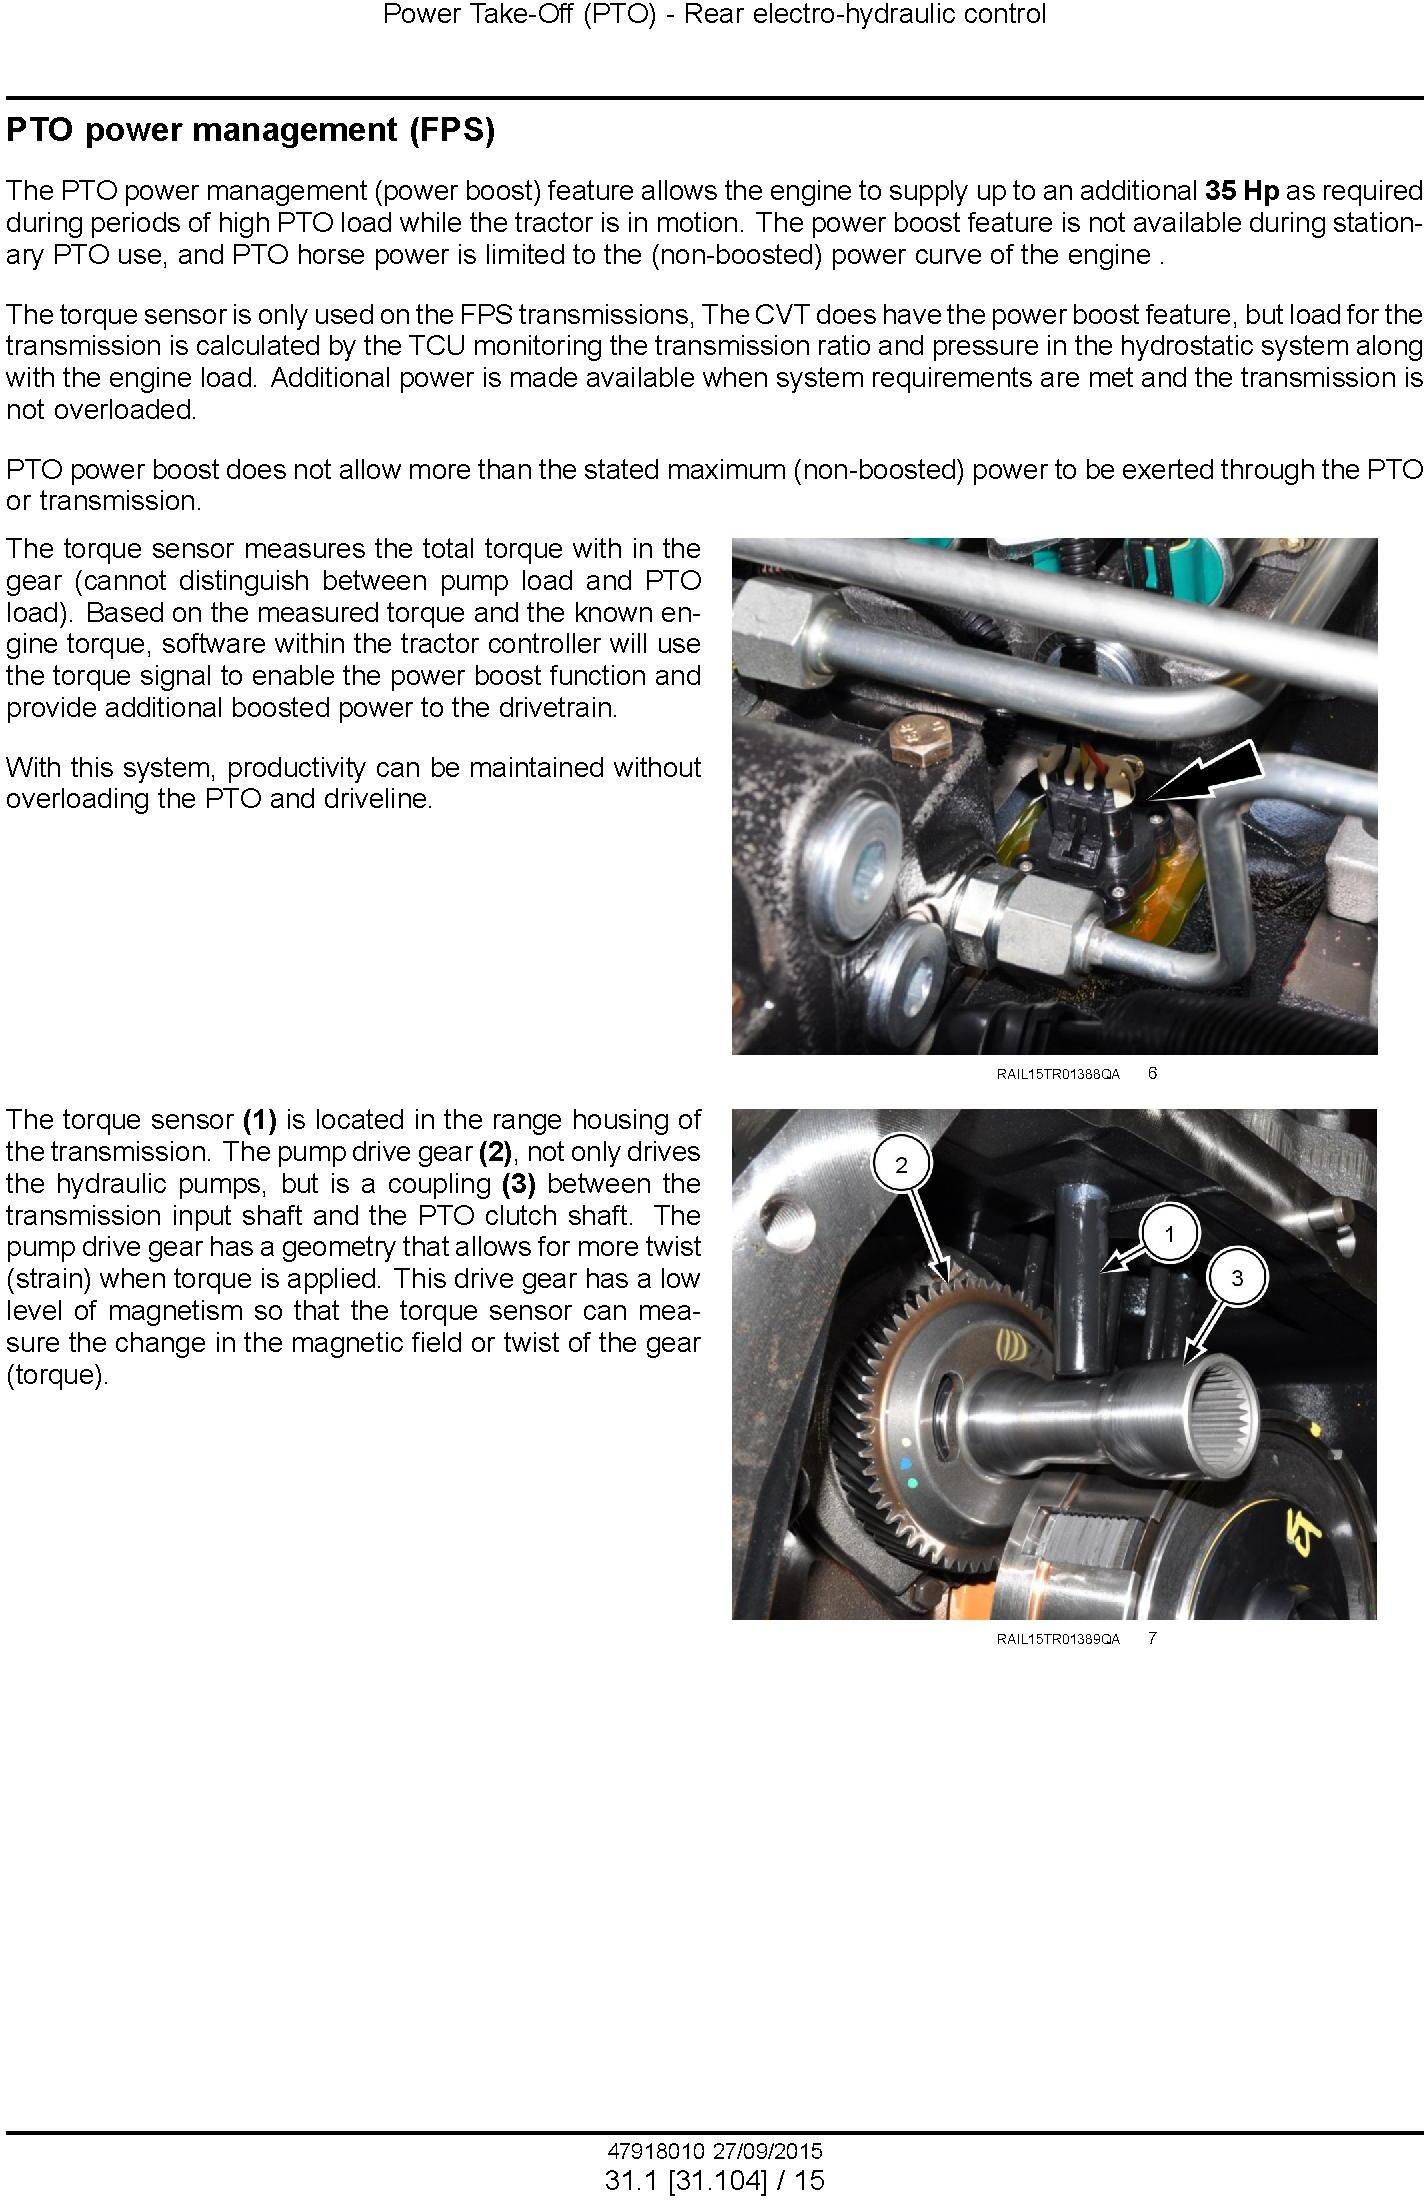 New Holland T8.320, T8.350, T8.380, T8.410, T8.435 and SmartTrax Tier 2 CVT Tractor Service Manual - 3